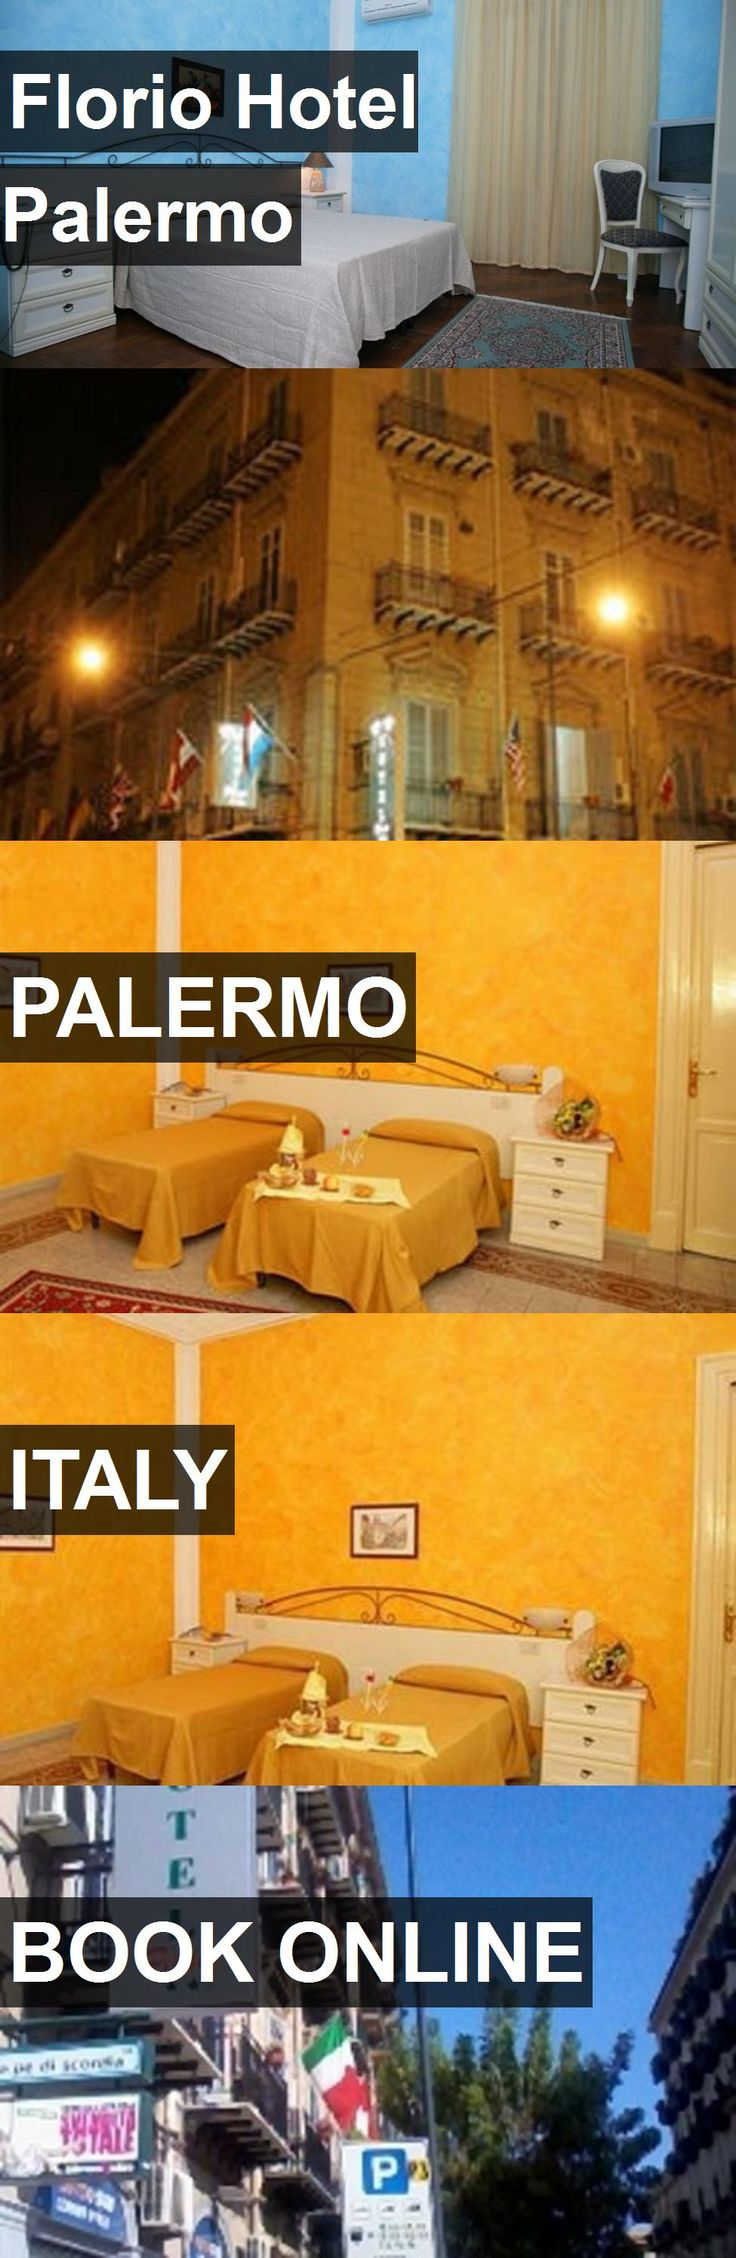 Florio Hotel Palermo in Palermo, Italy. For more information, photos, reviews and best prices please follow the link. #Italy #Palermo #travel #vacation #hotel